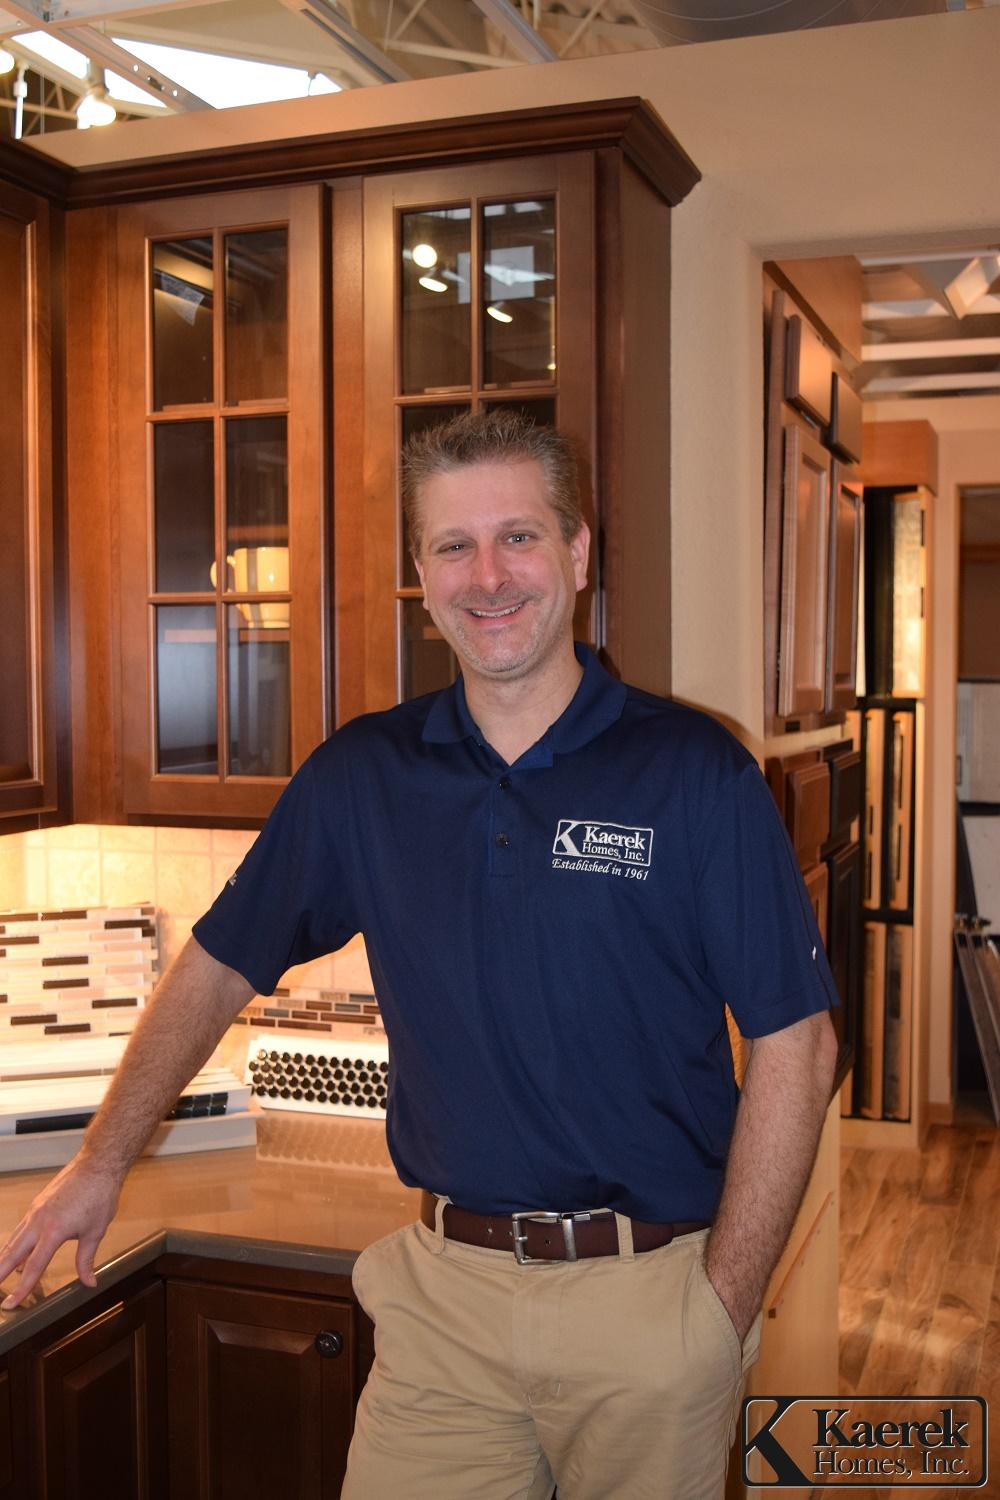 Jeff - Architectural Department Manager